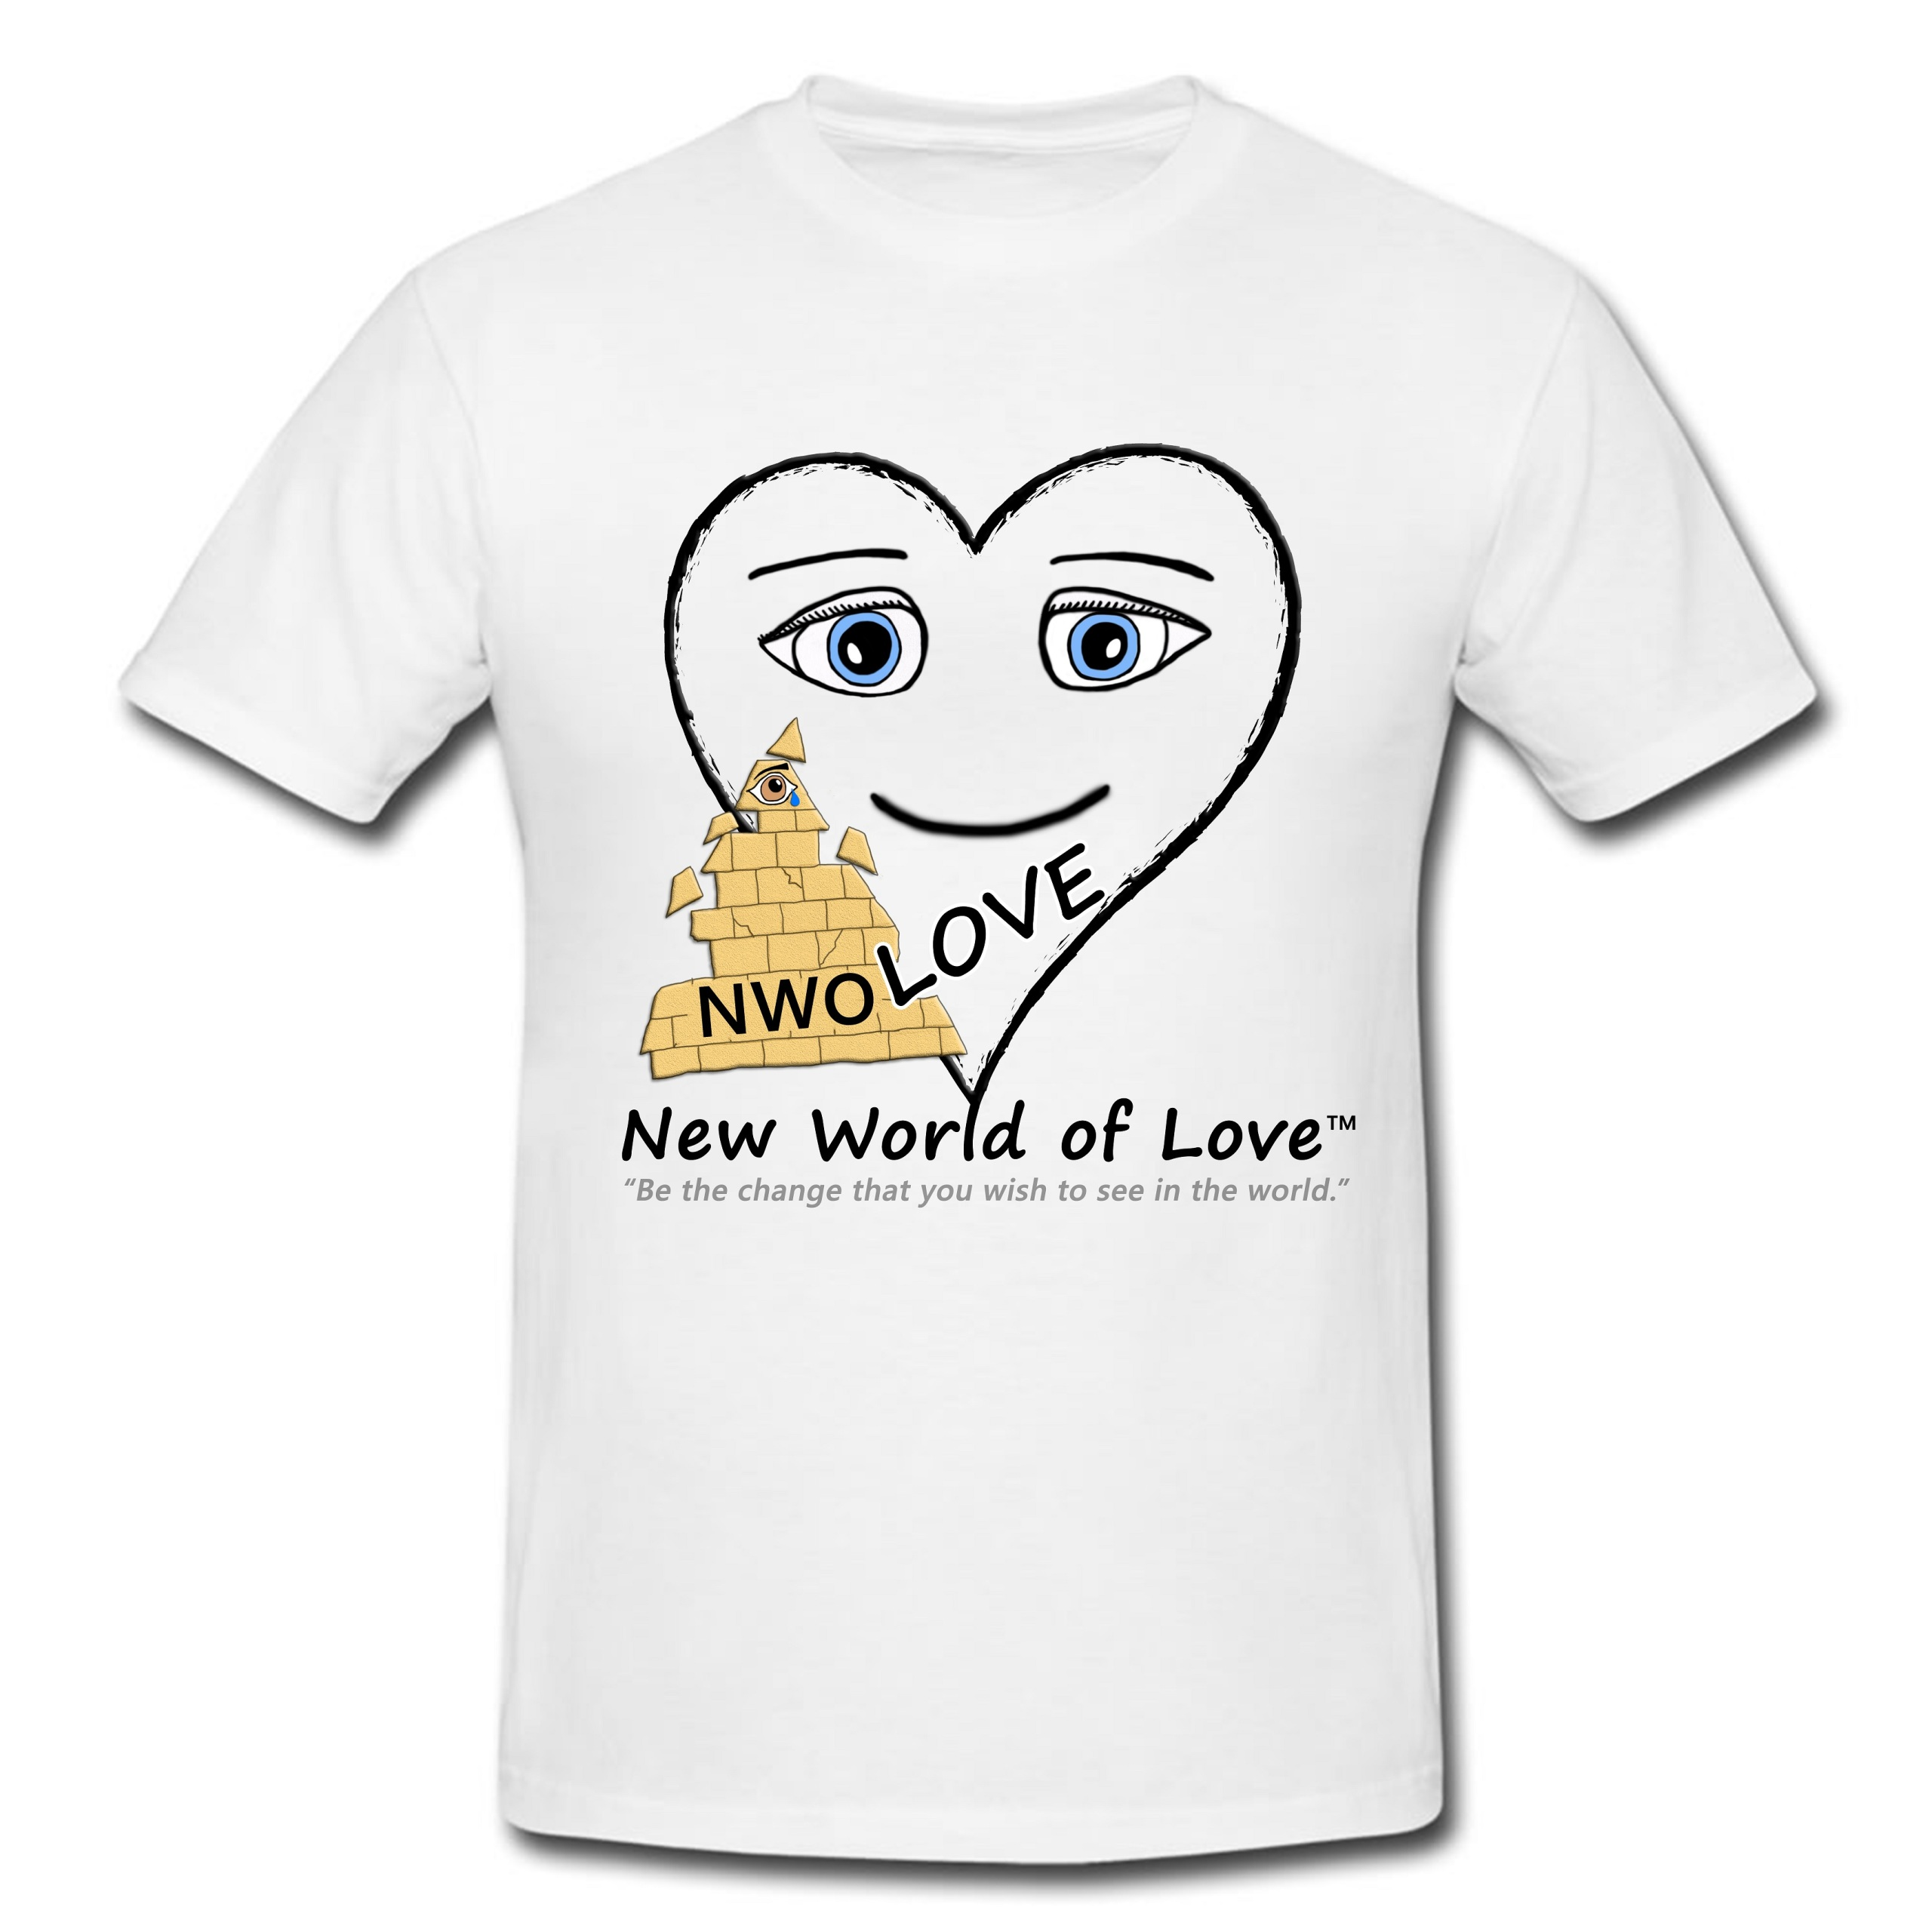 New world of love t shirt multiple designs gumiabroncs Choice Image